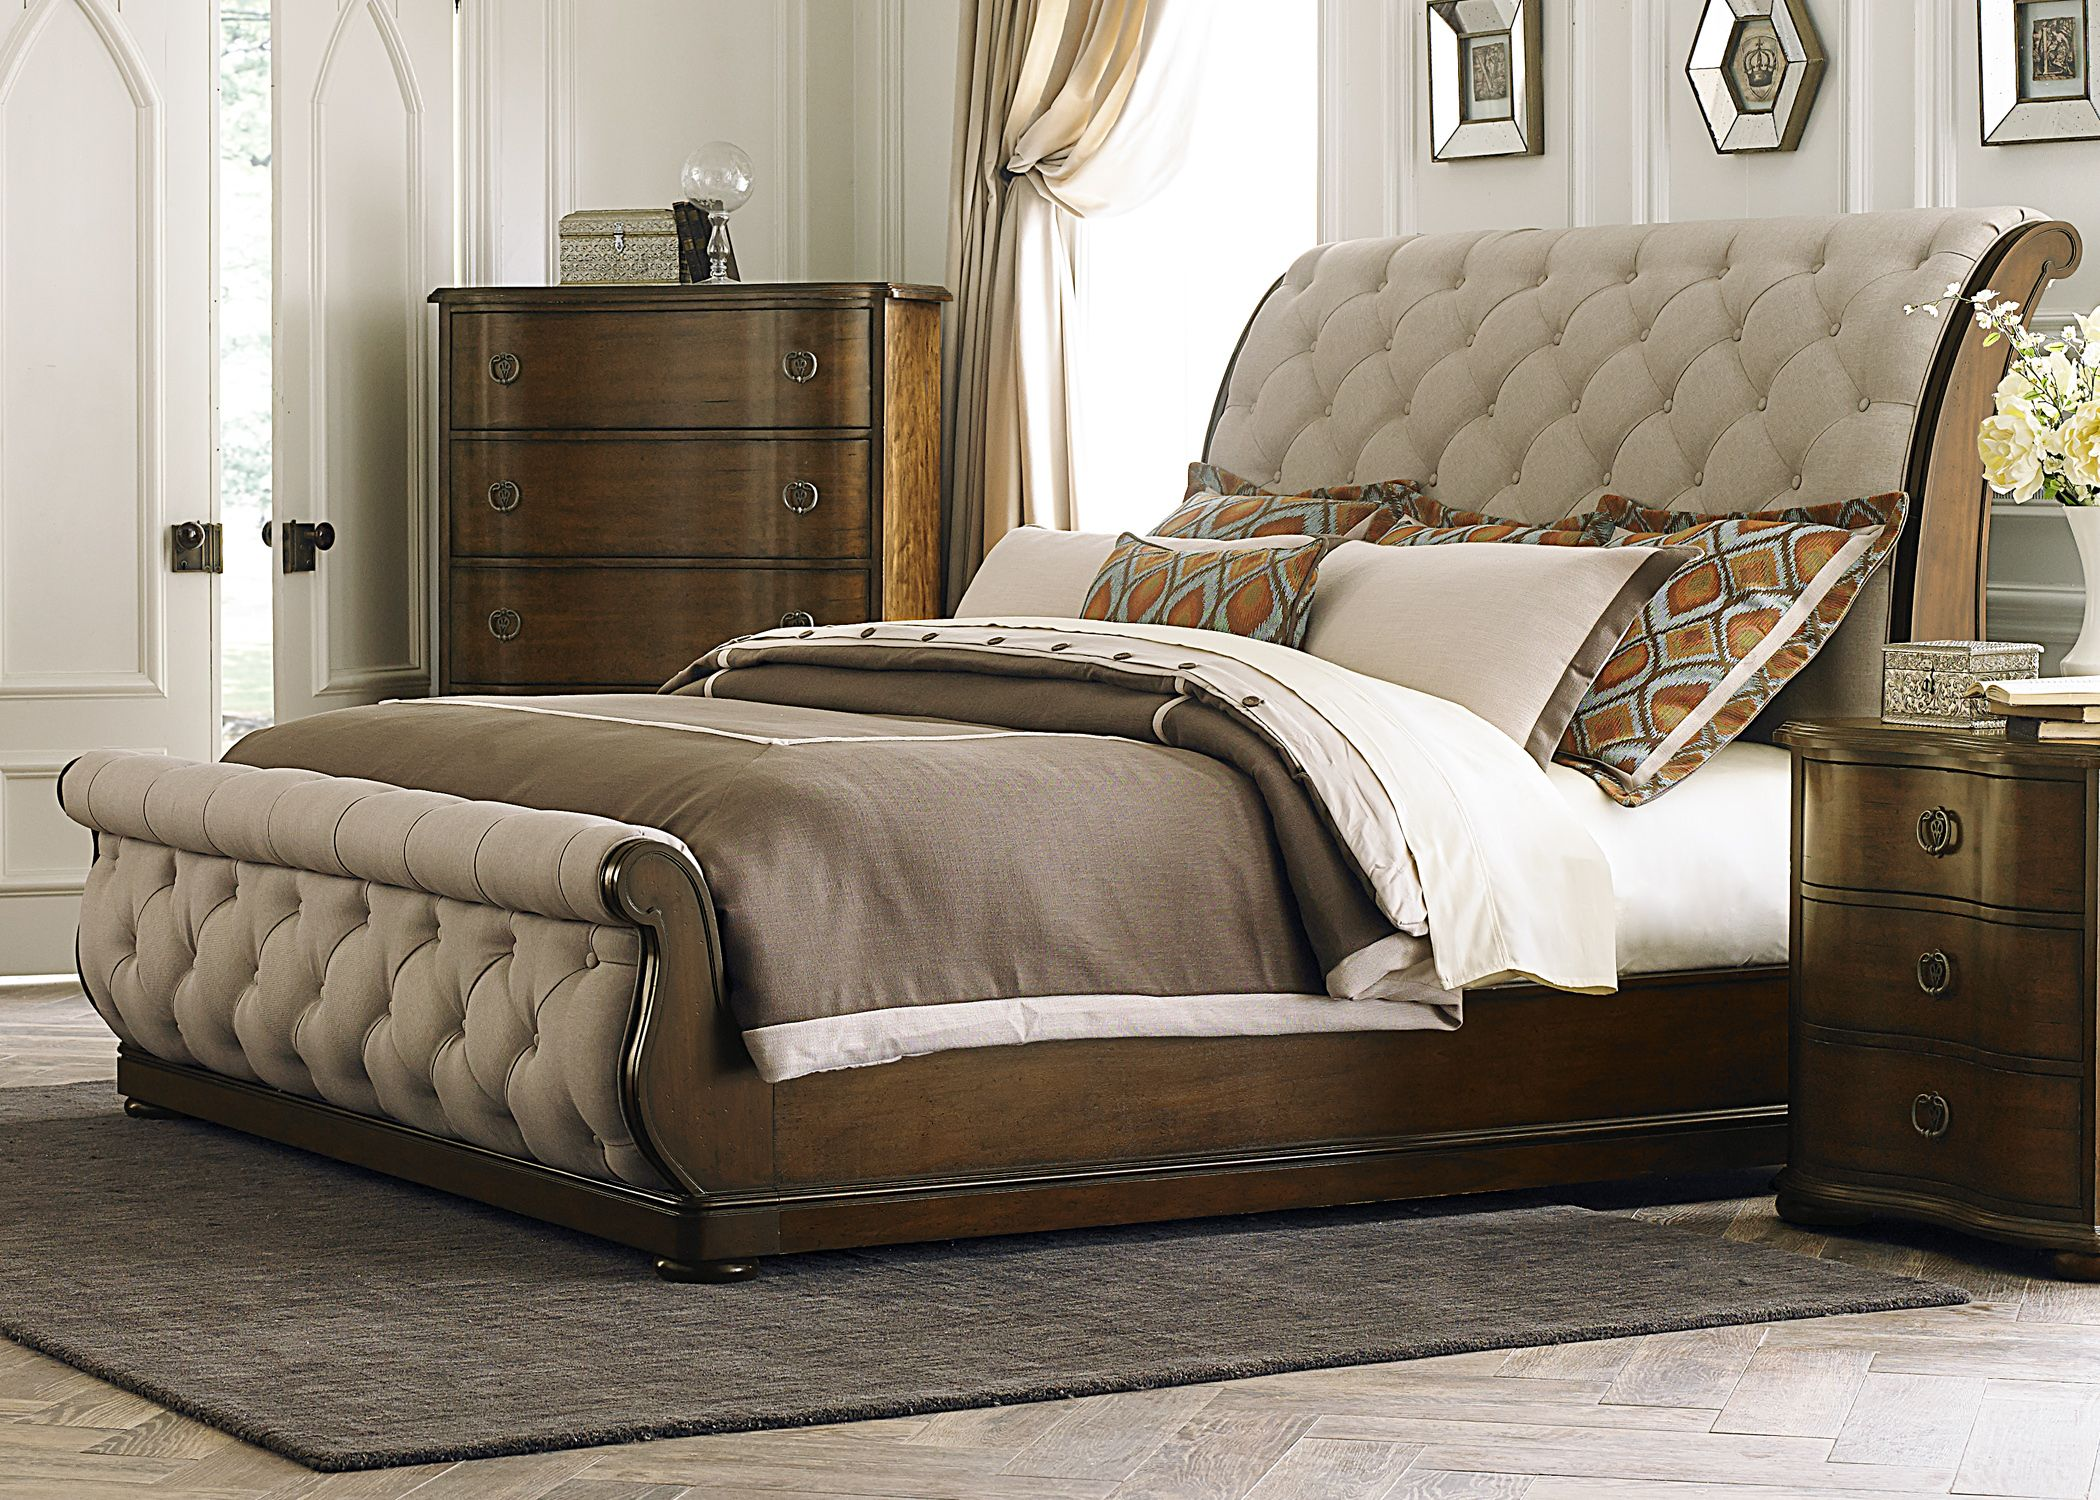 Liberty Cotswold Queen Upholstered Sleigh Bed | Dream Home Ideas ...